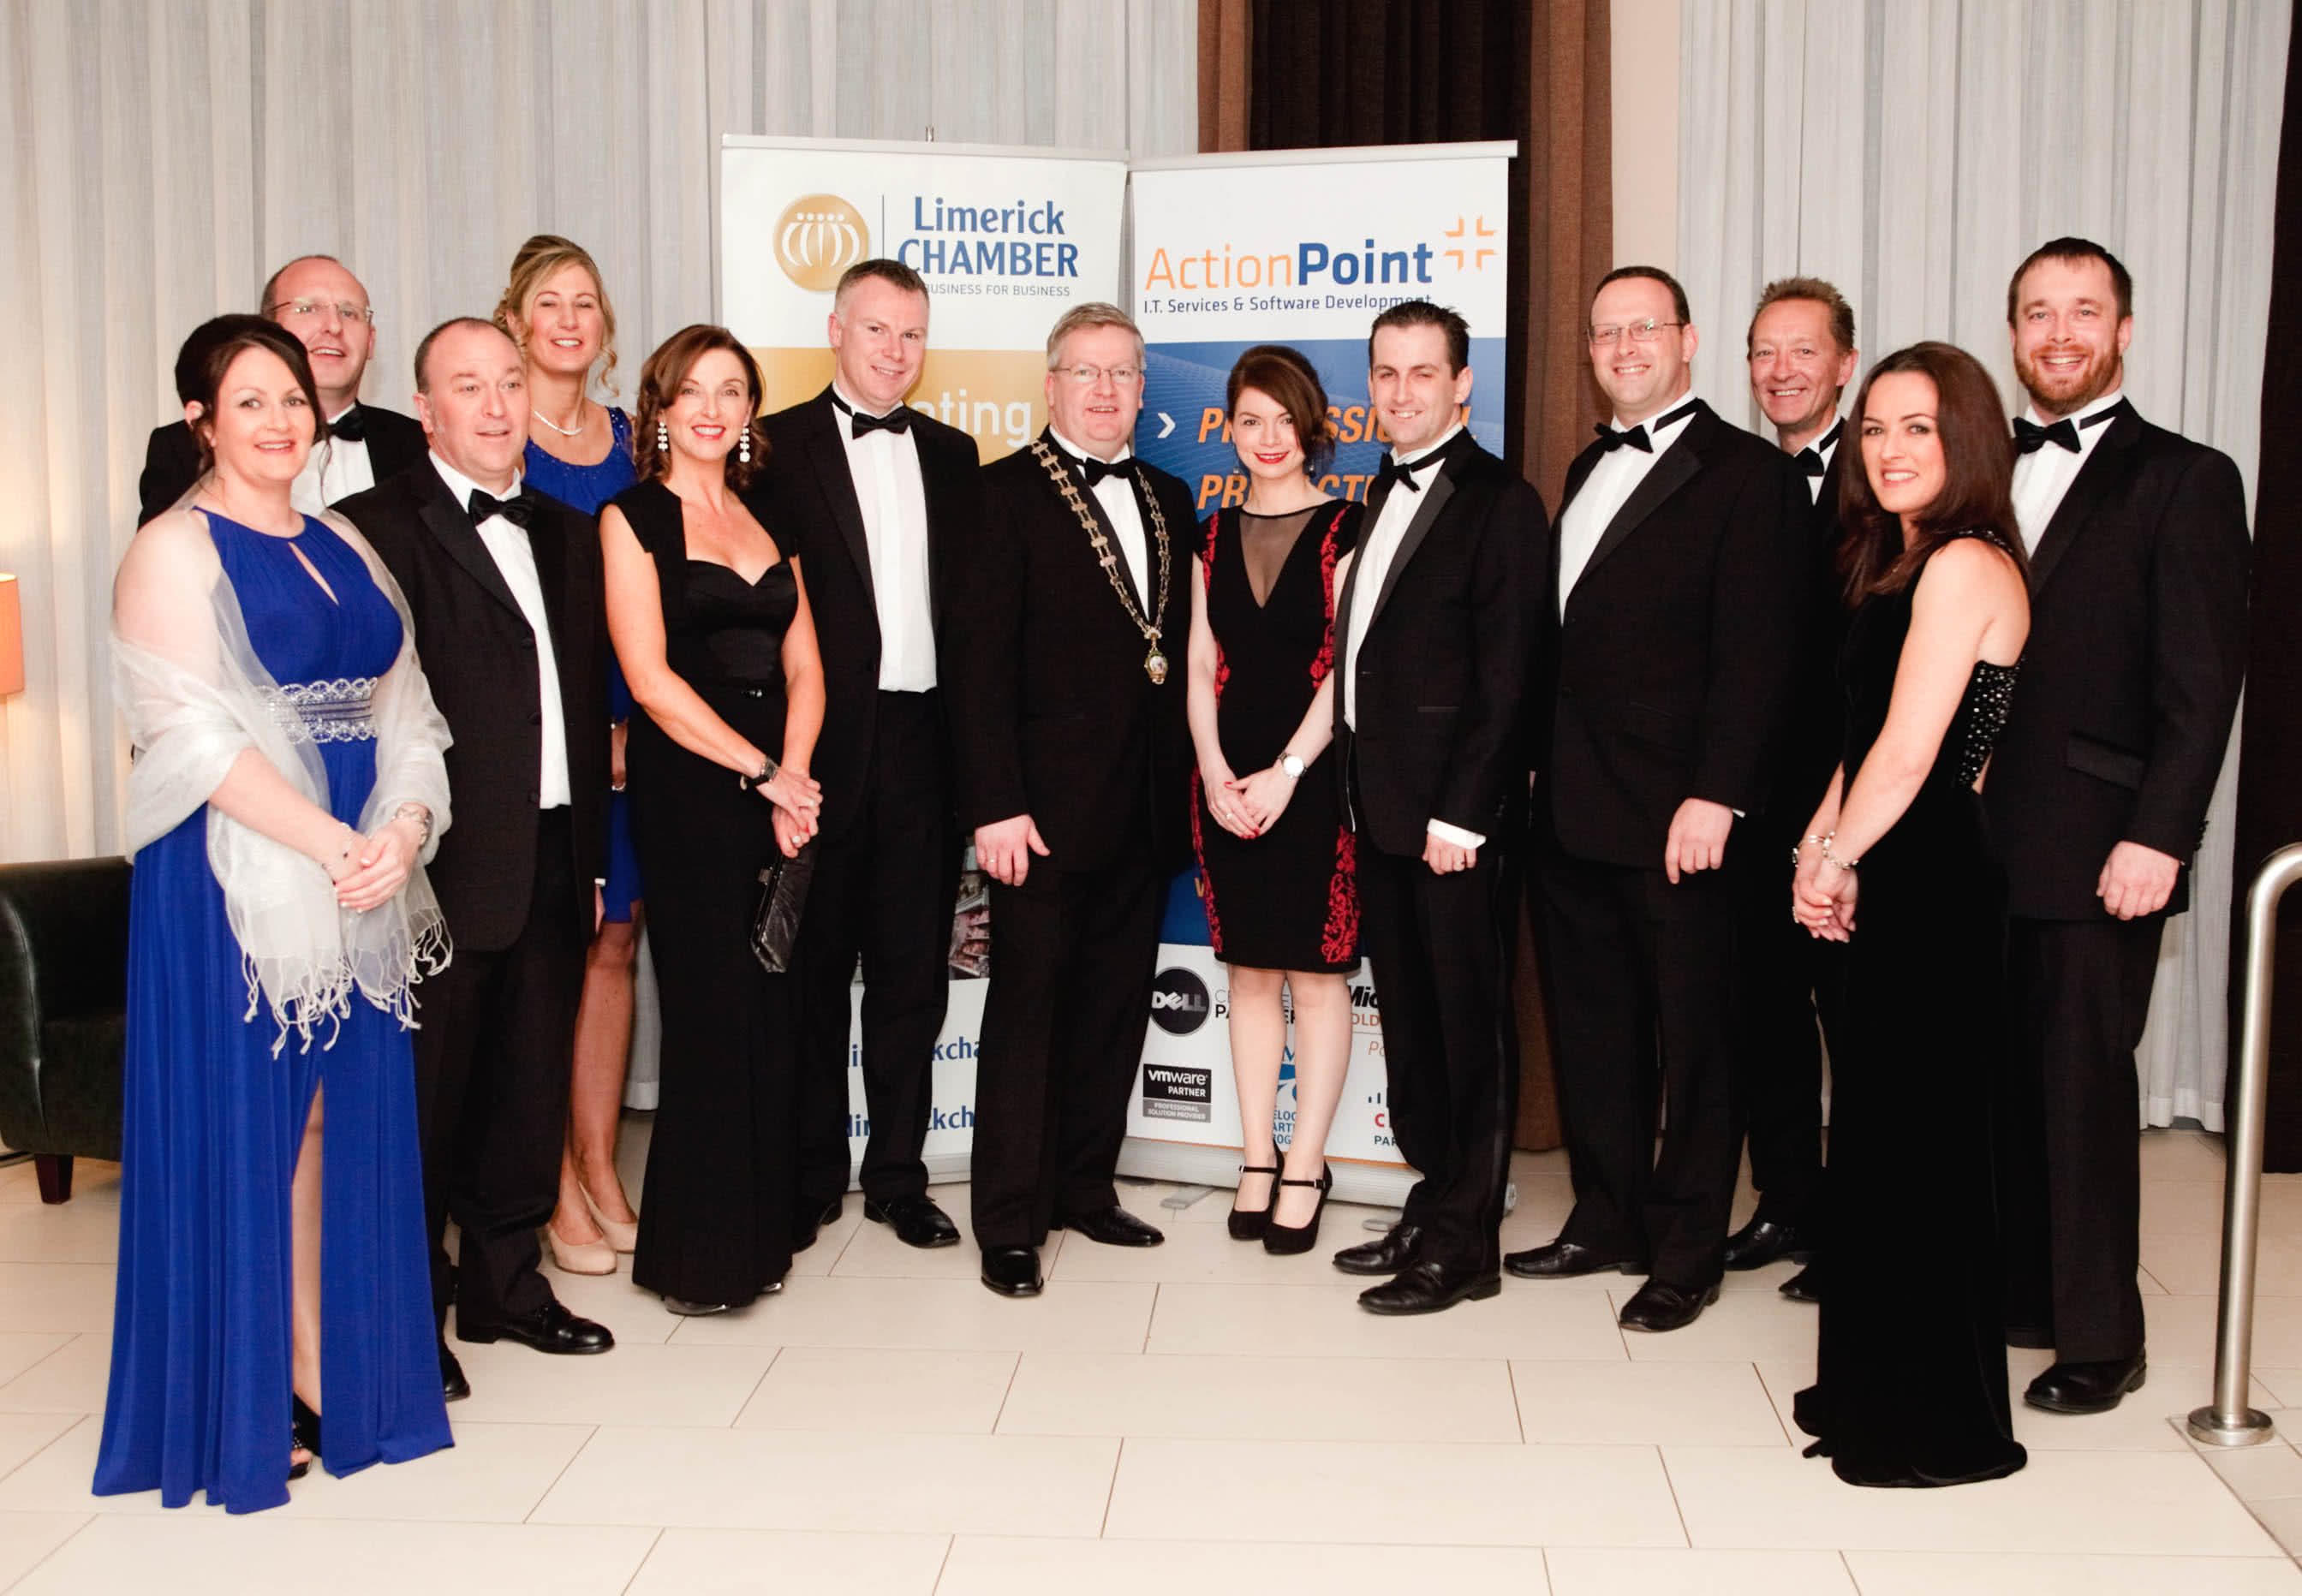 Action Point sponsor Limerick Chamber Awards